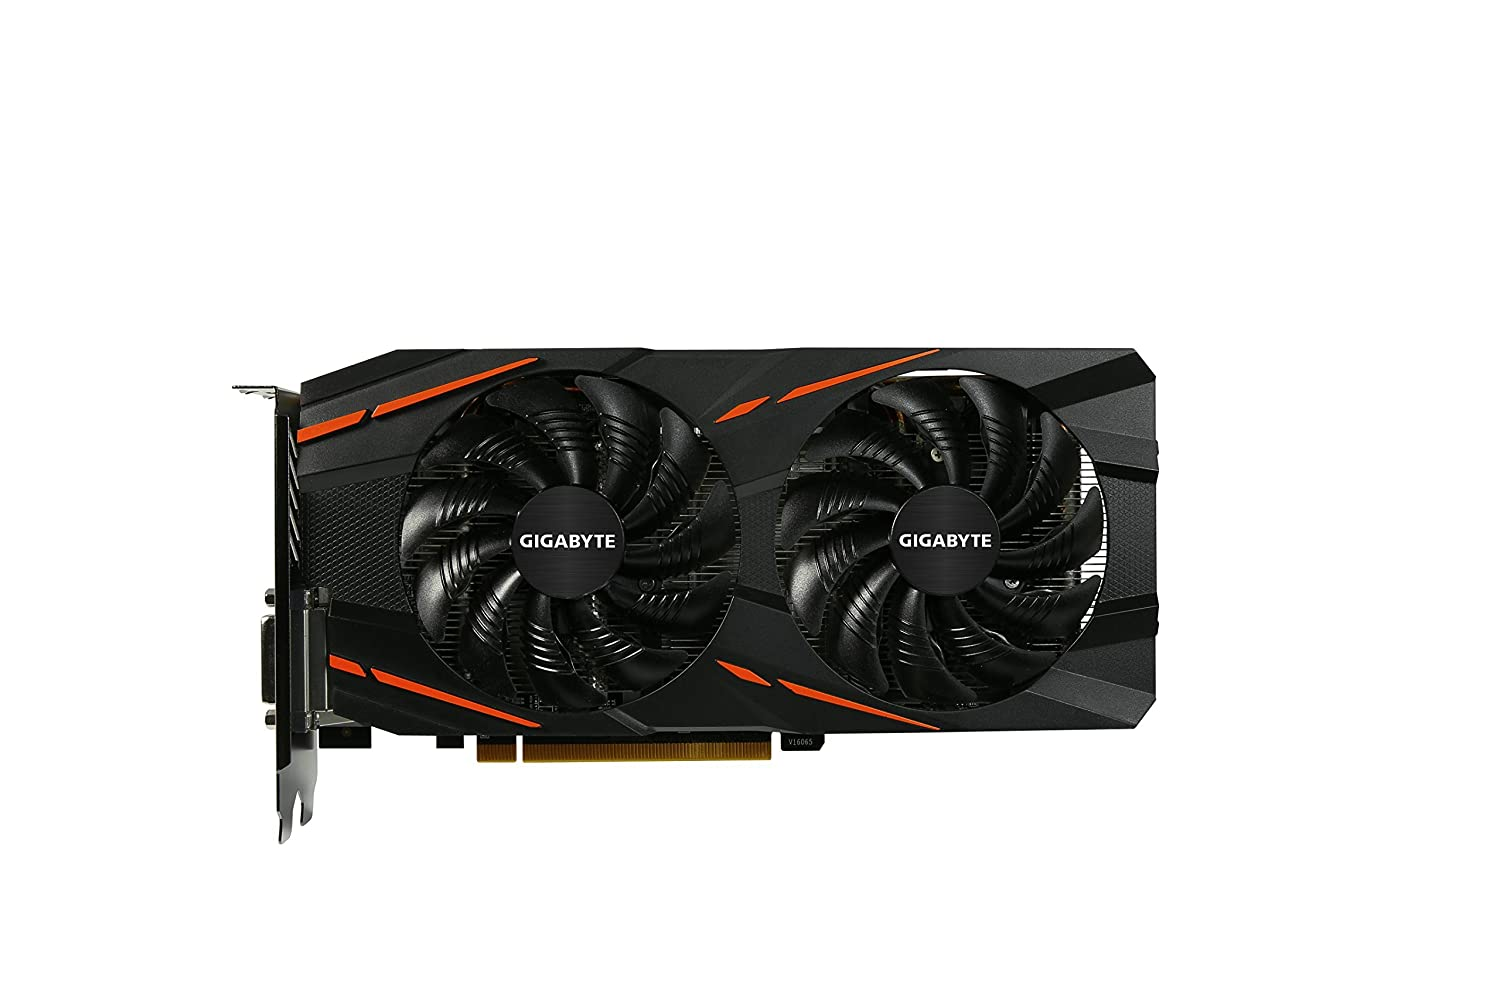 Amazon.com: Gigabyte Radeon RX 570 Gaming 4GB Graphic Cards GV-RX570GAMING-4GD (Certified Refurbished): Computers & Accessories